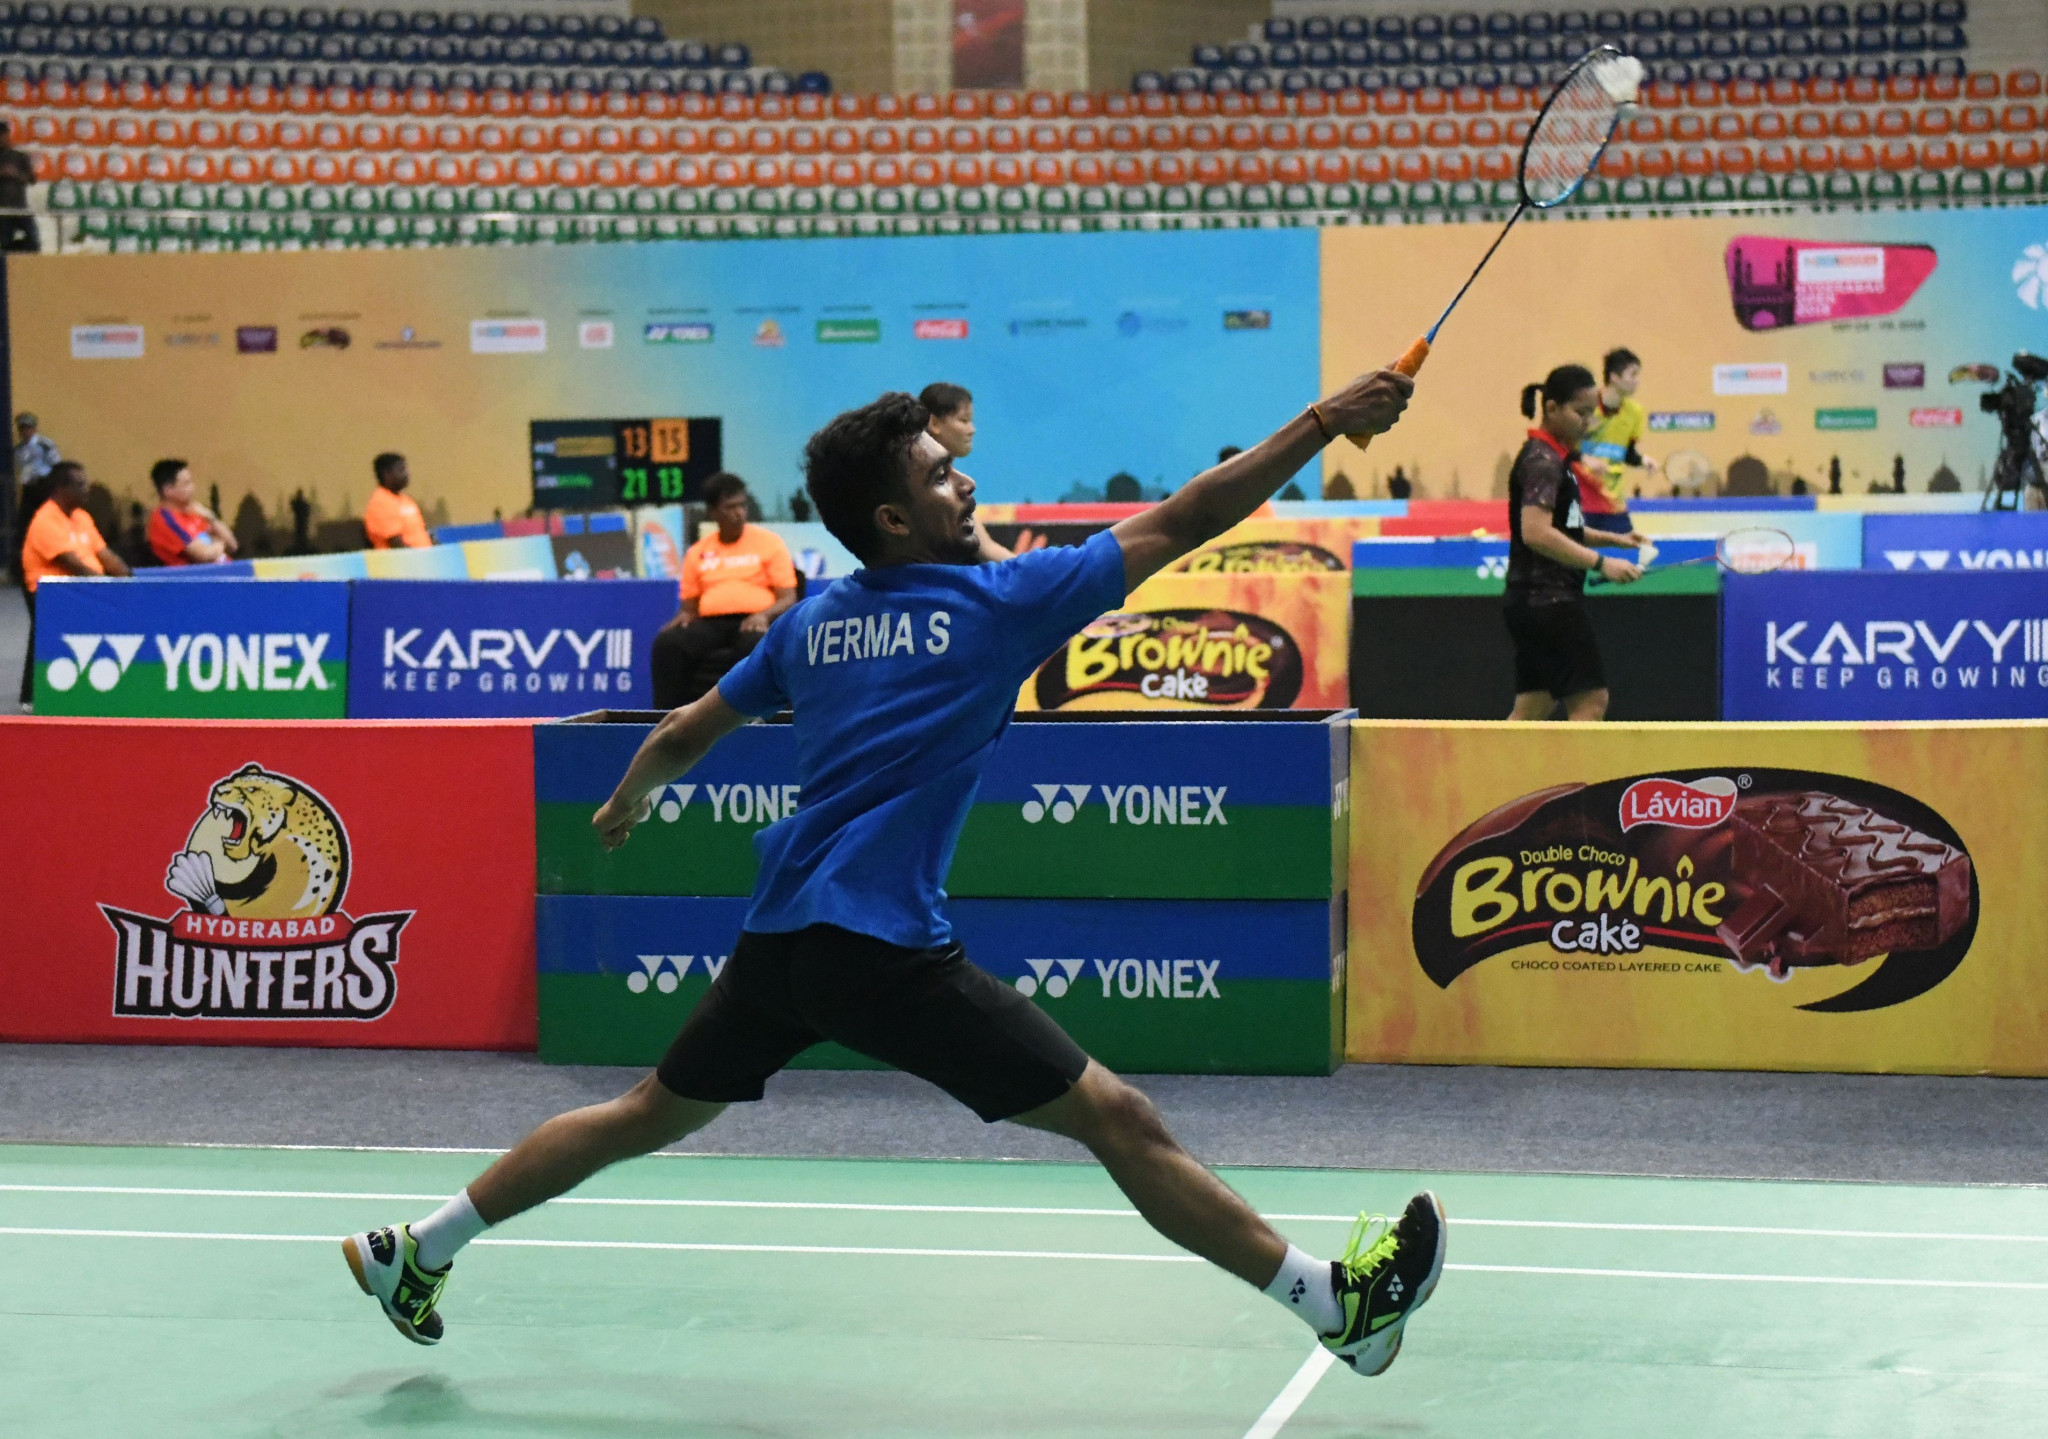 Verma earns tough win over fellow Indian to reach BWF Hyderabad Open last four